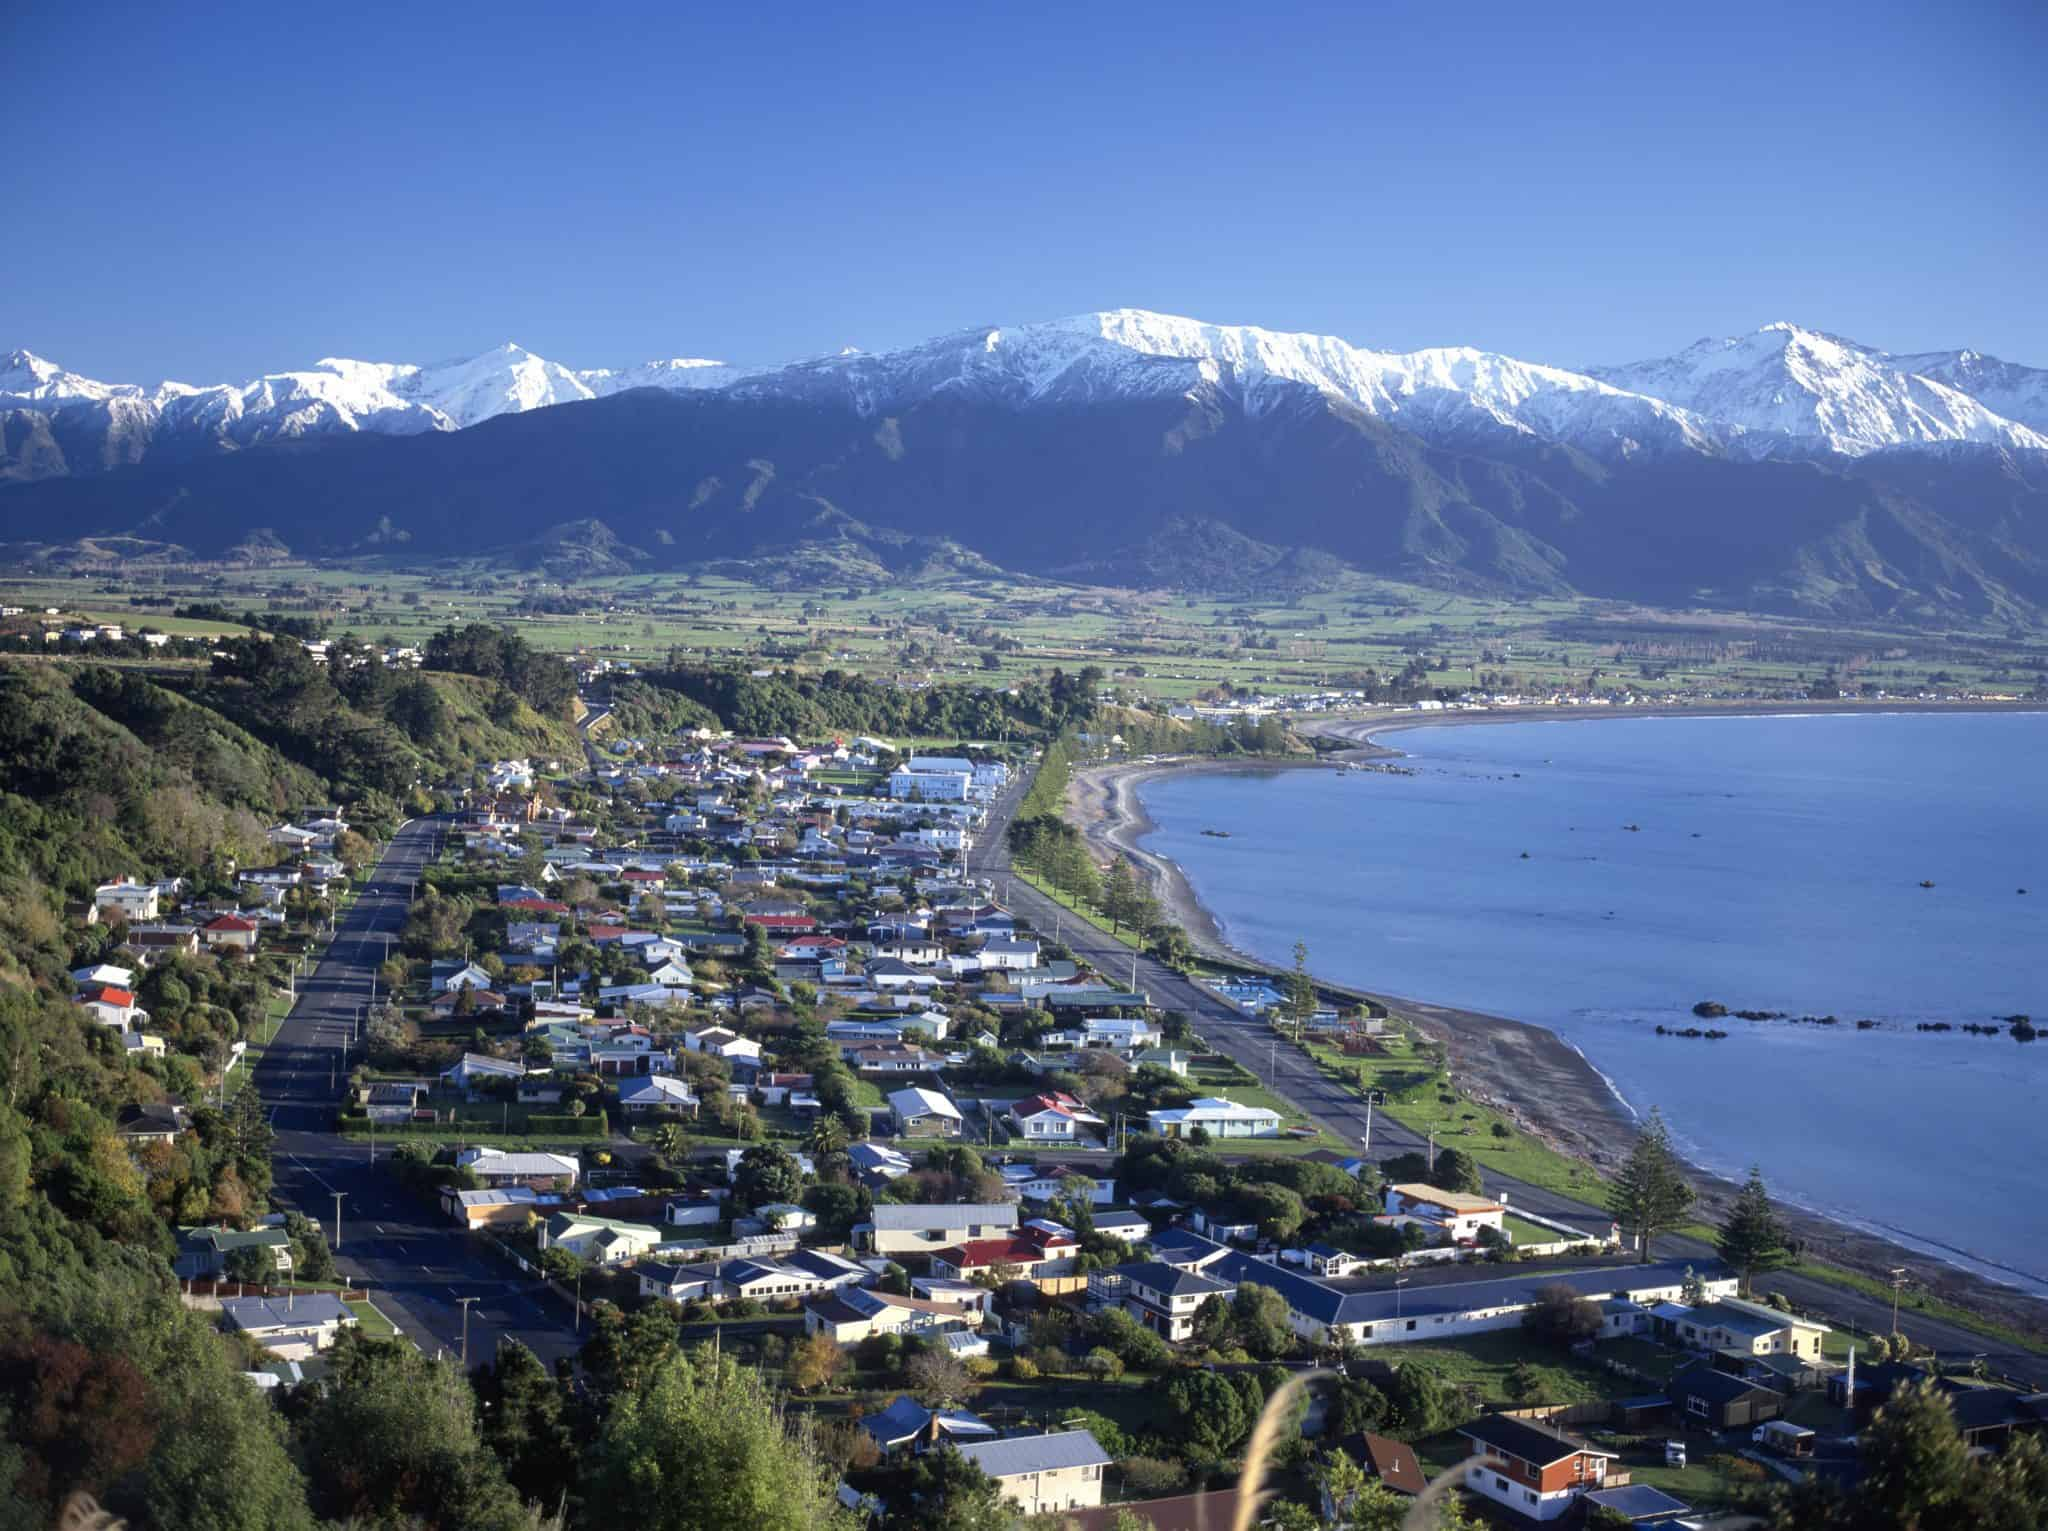 Kaikoura on the south island of New Zealand.